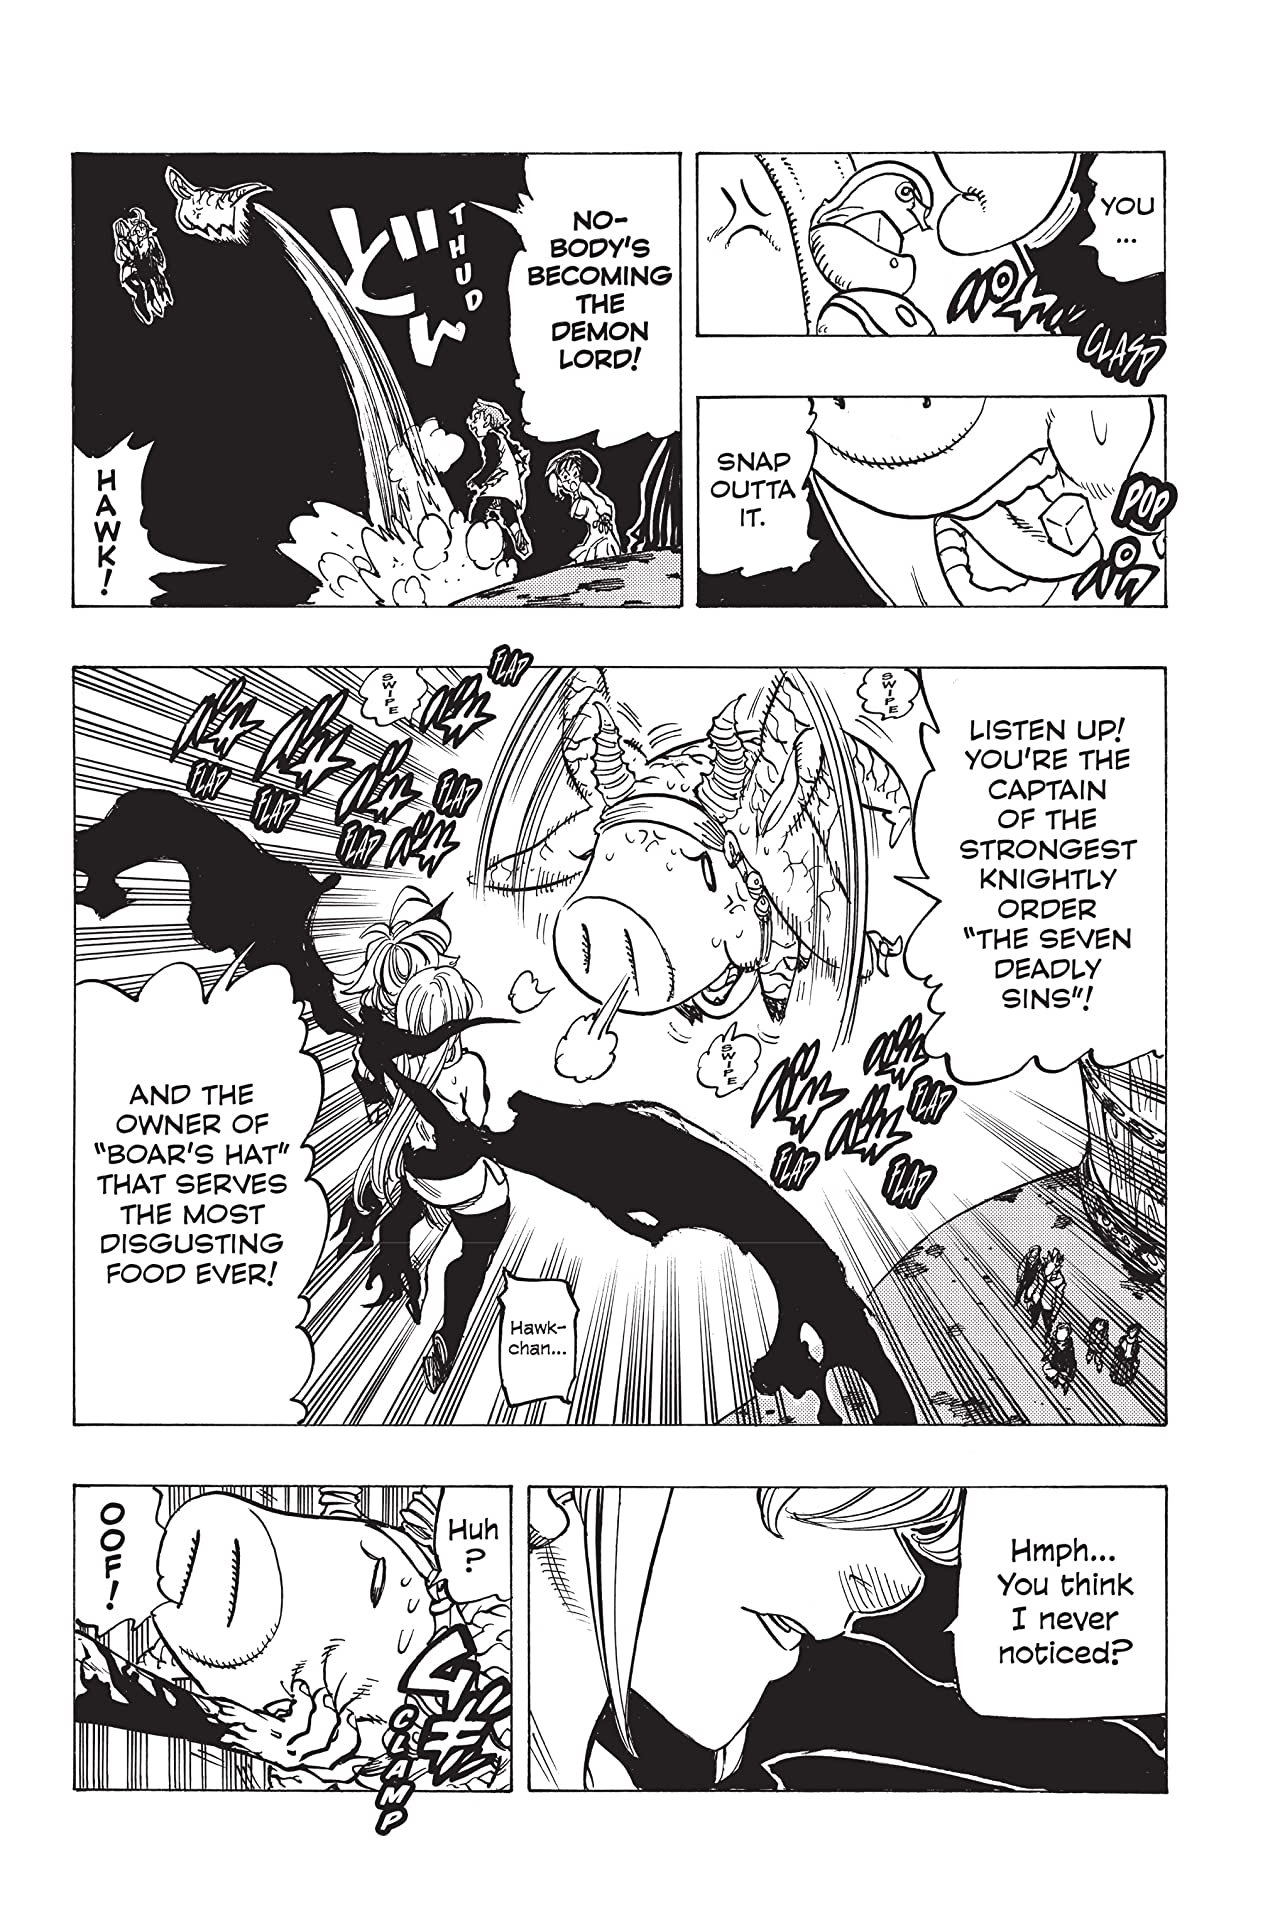 The Seven Deadly Sins #243